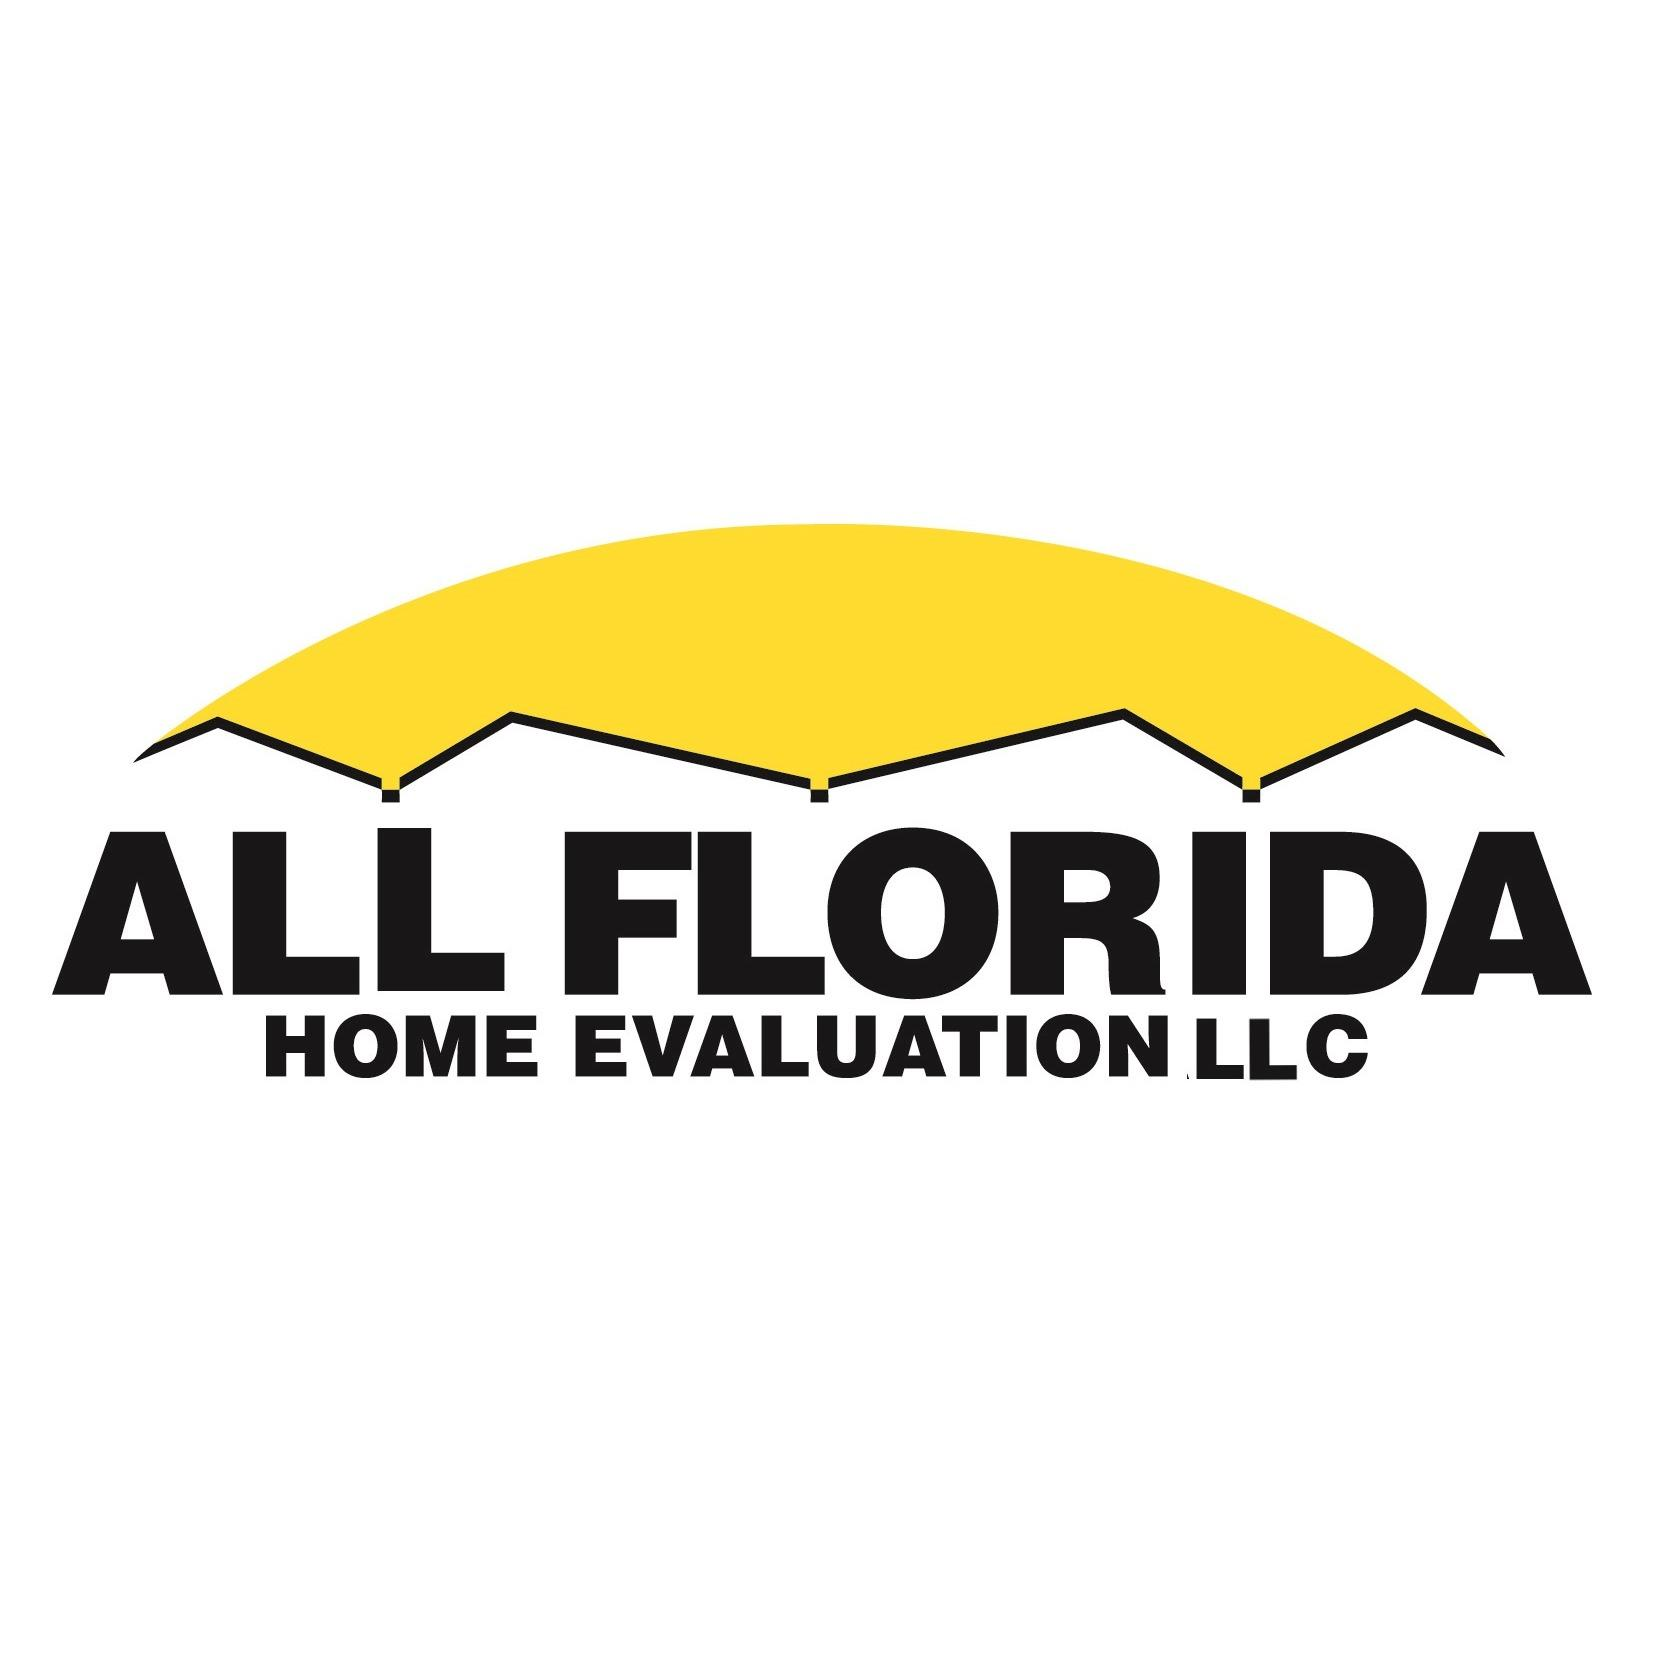 All Florida Home Evaluation